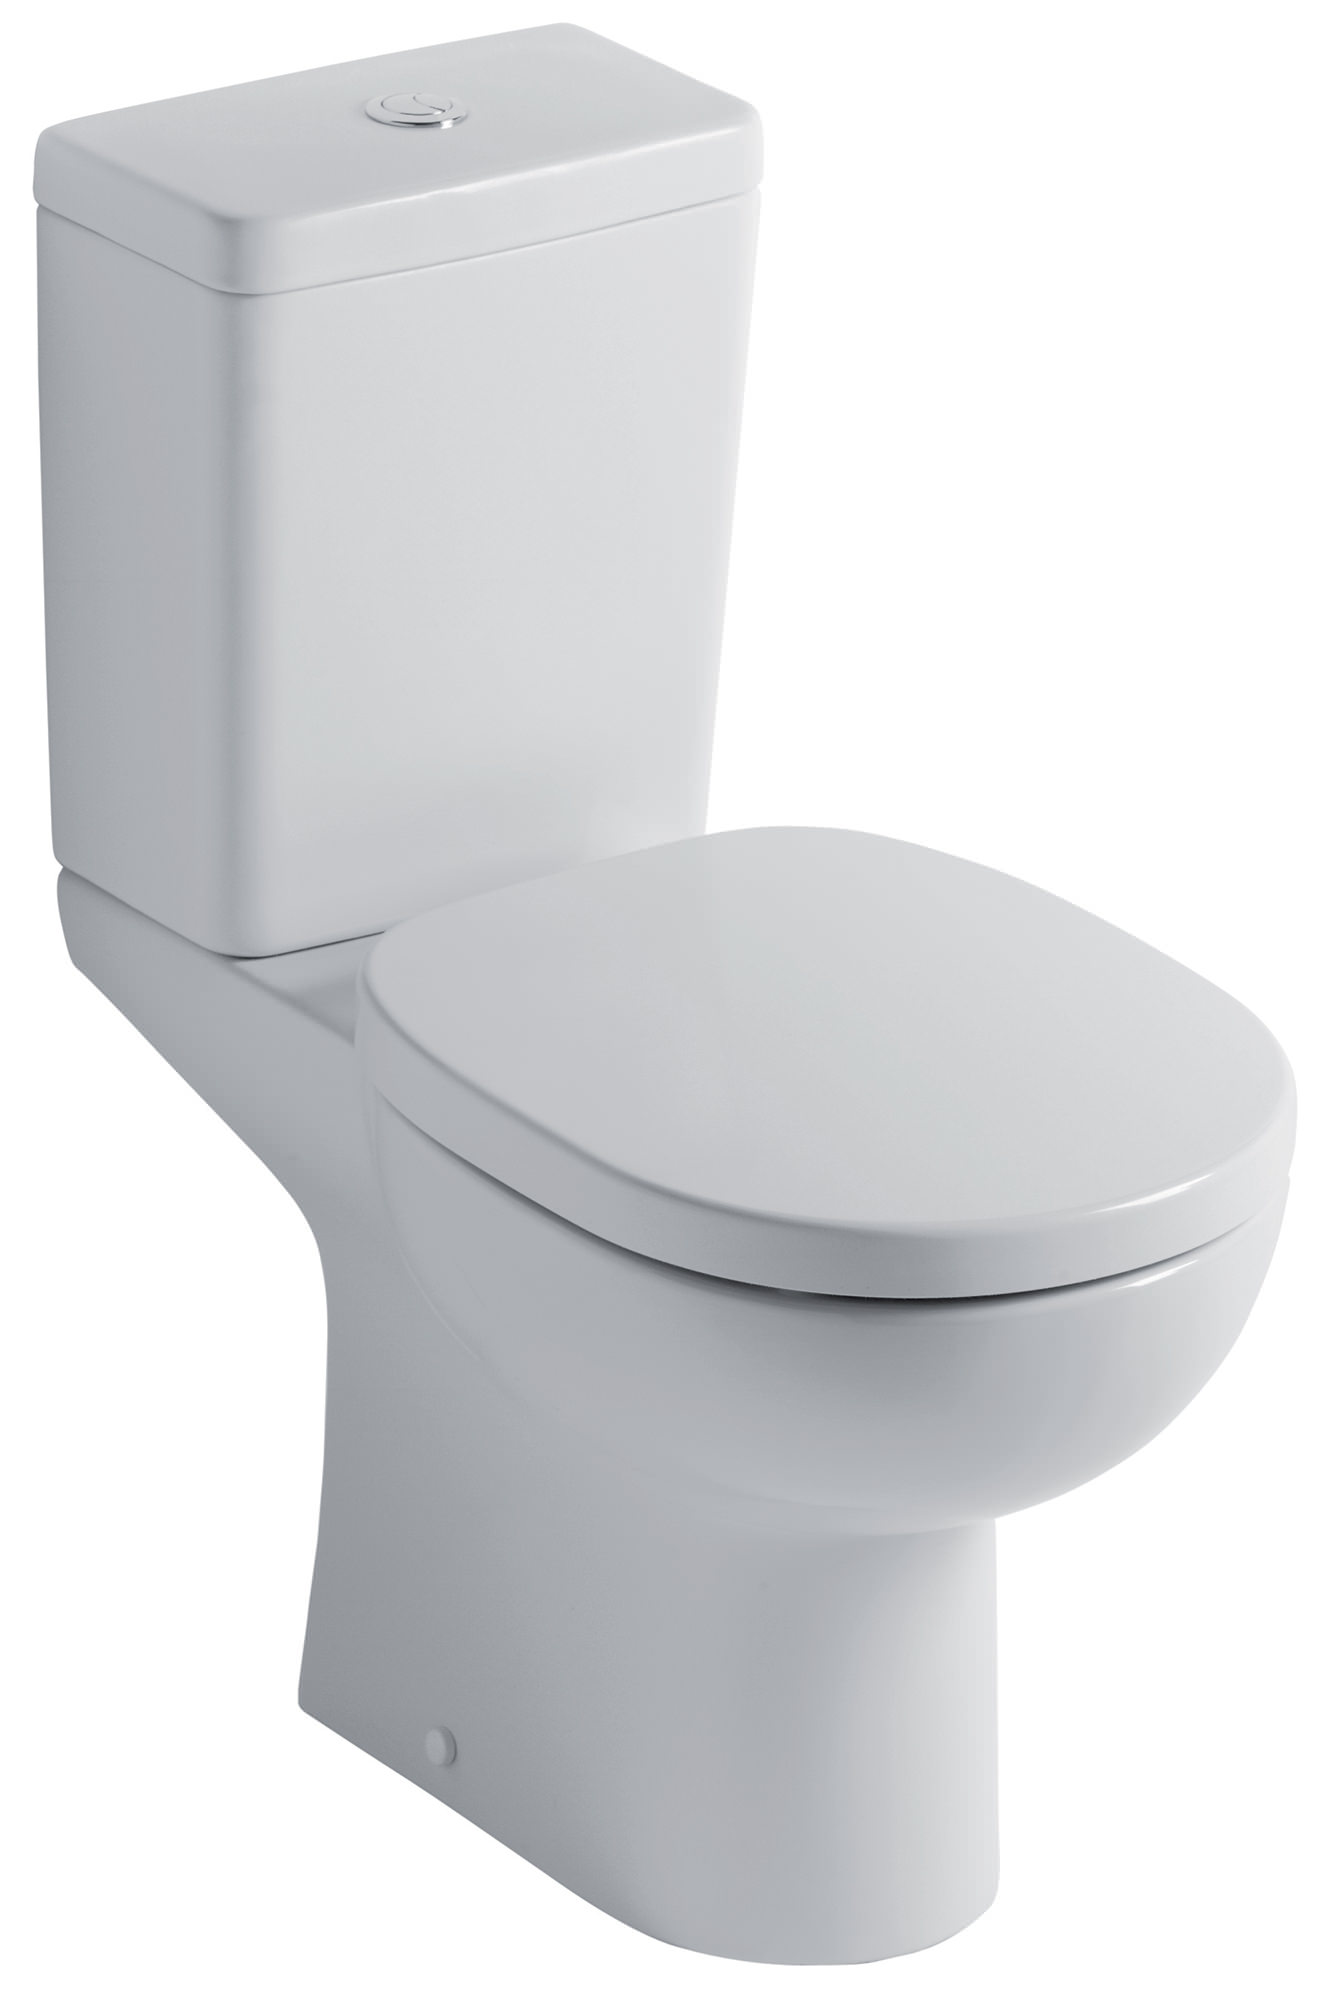 ideal standard studio close coupled wc with cube cistern 665mm. Black Bedroom Furniture Sets. Home Design Ideas